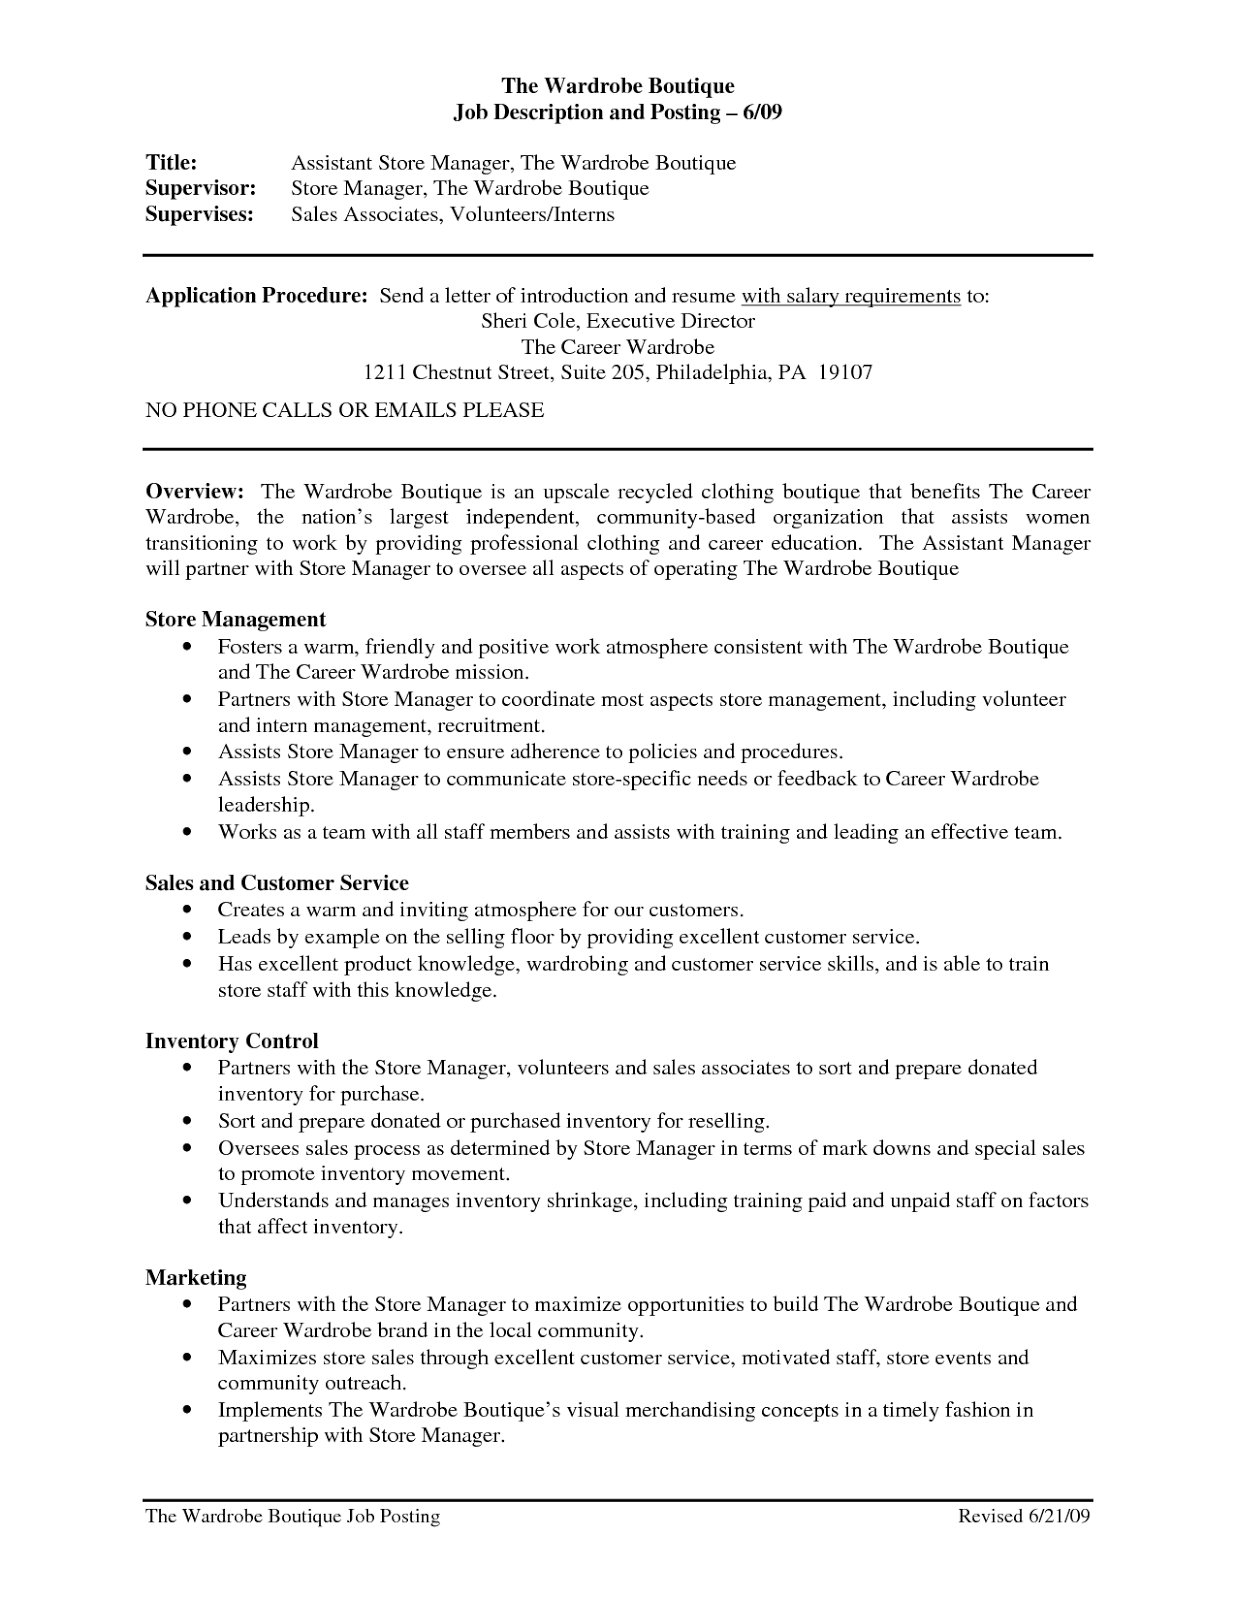 Clerk Resume   Resume Format Download Pdf Home Design Resume CV Cover Leter Grocery Clerk Resume Sample Jobresume gdn customer service grocery clerk  resume sample